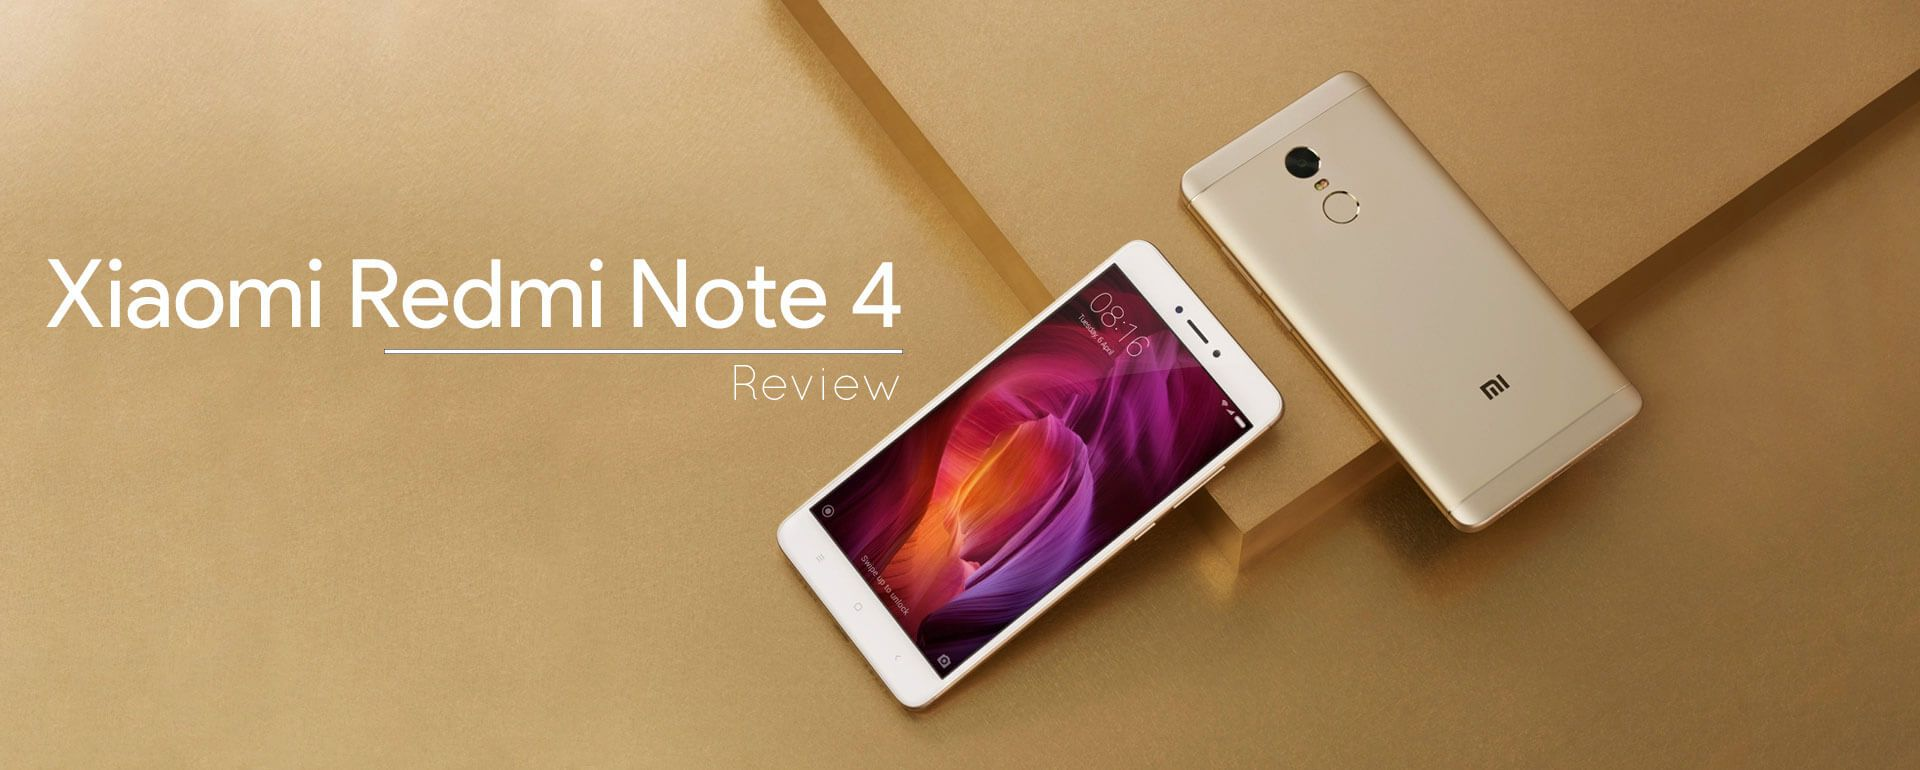 Xiaomi Redmi Note 4 Review: Xiaomi Redmi Note 4 Review: Never Run Out Of Battery